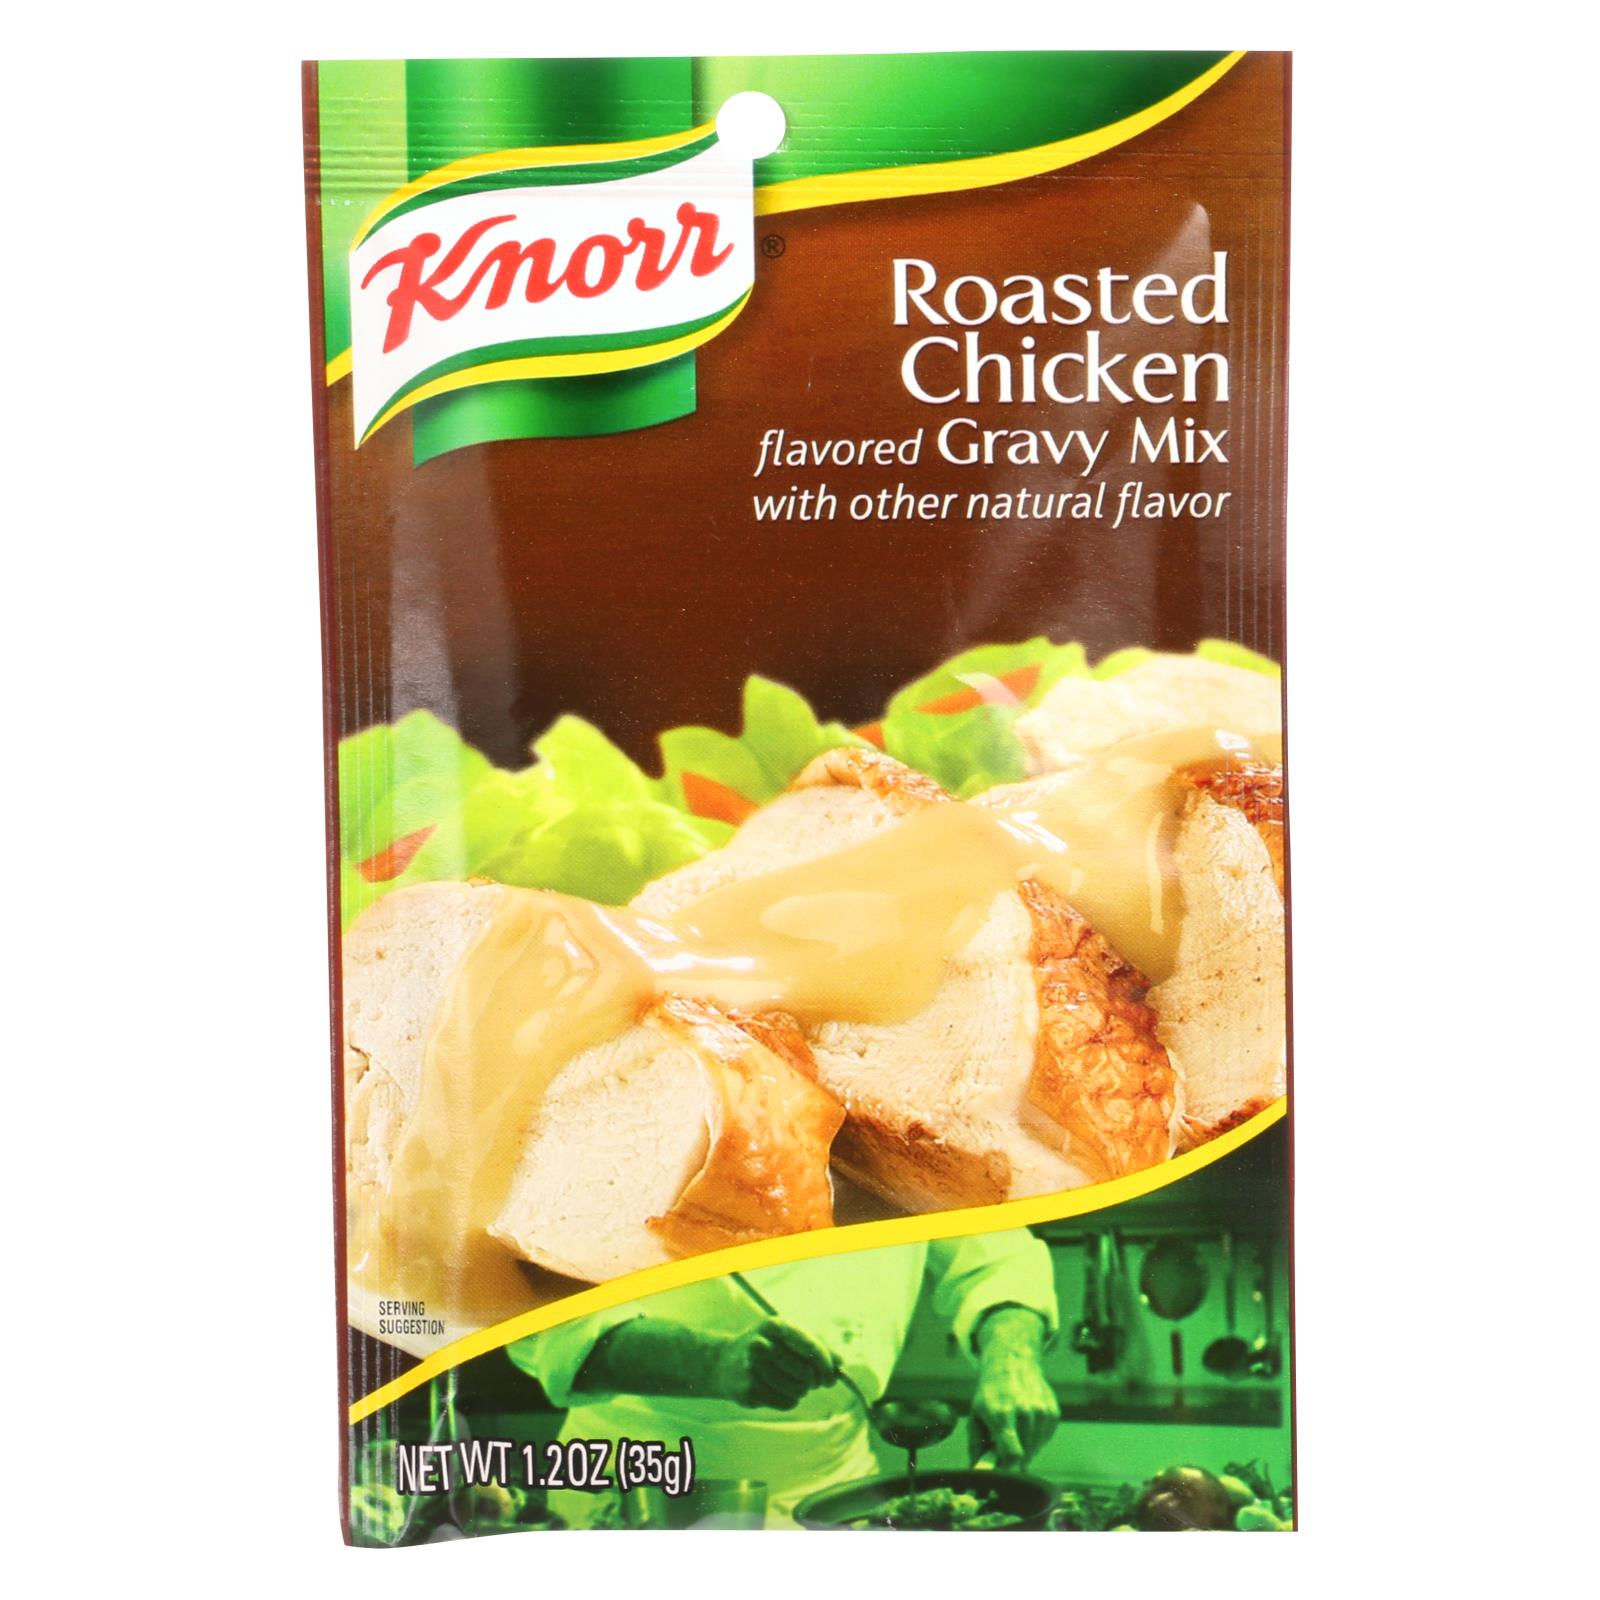 Knorr Gravy Mix Roasted Chicken 1.2 Oz Case Of 12 HG0100909